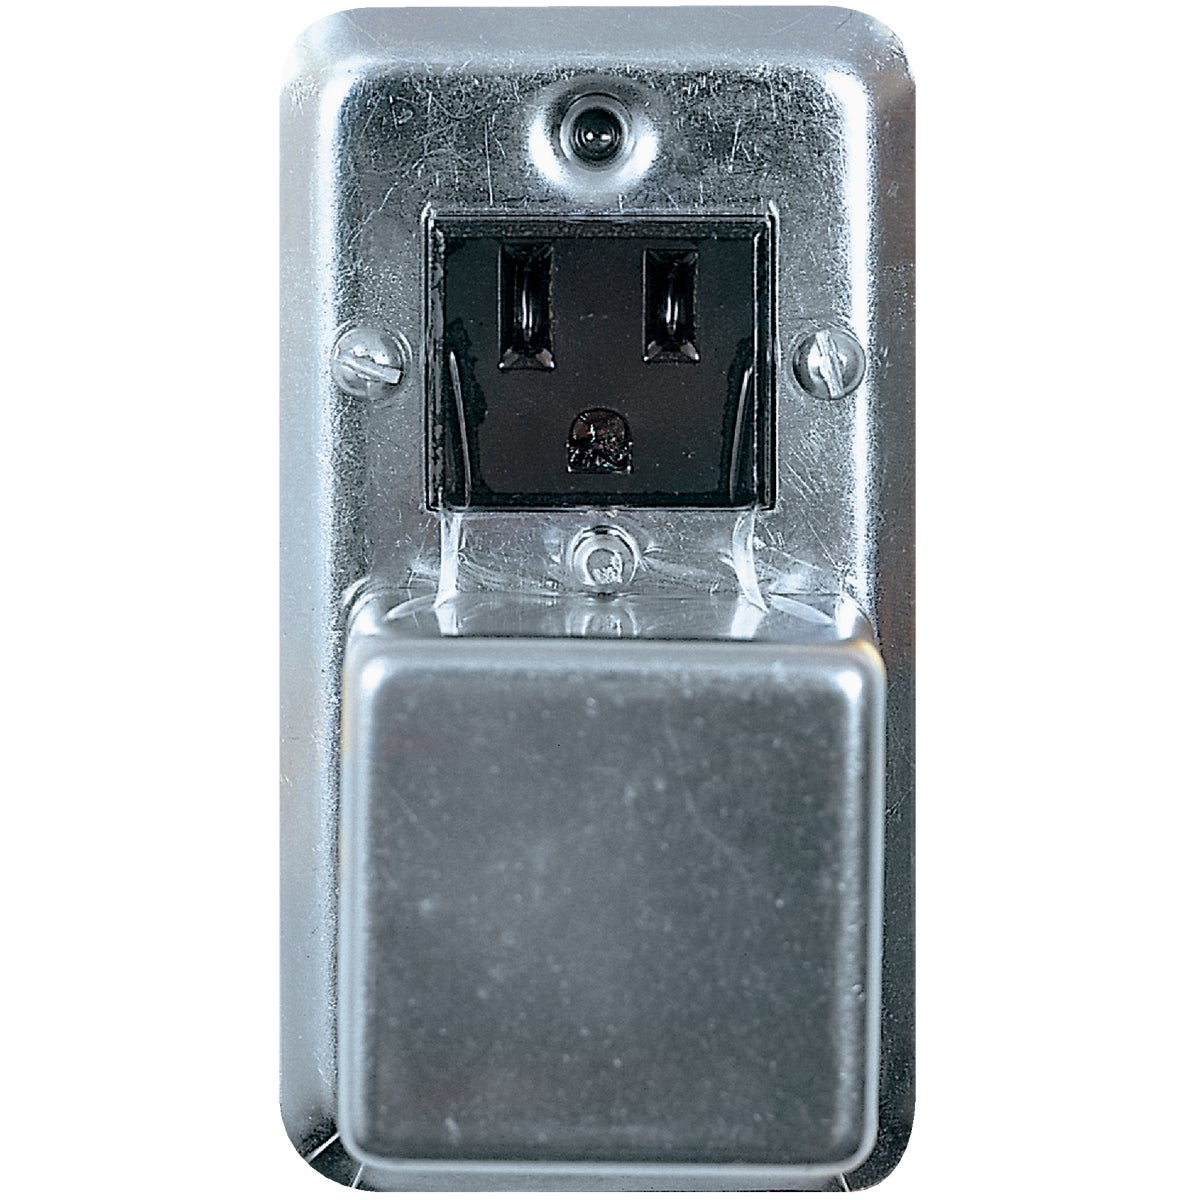 Fuse Holder Cover Plate